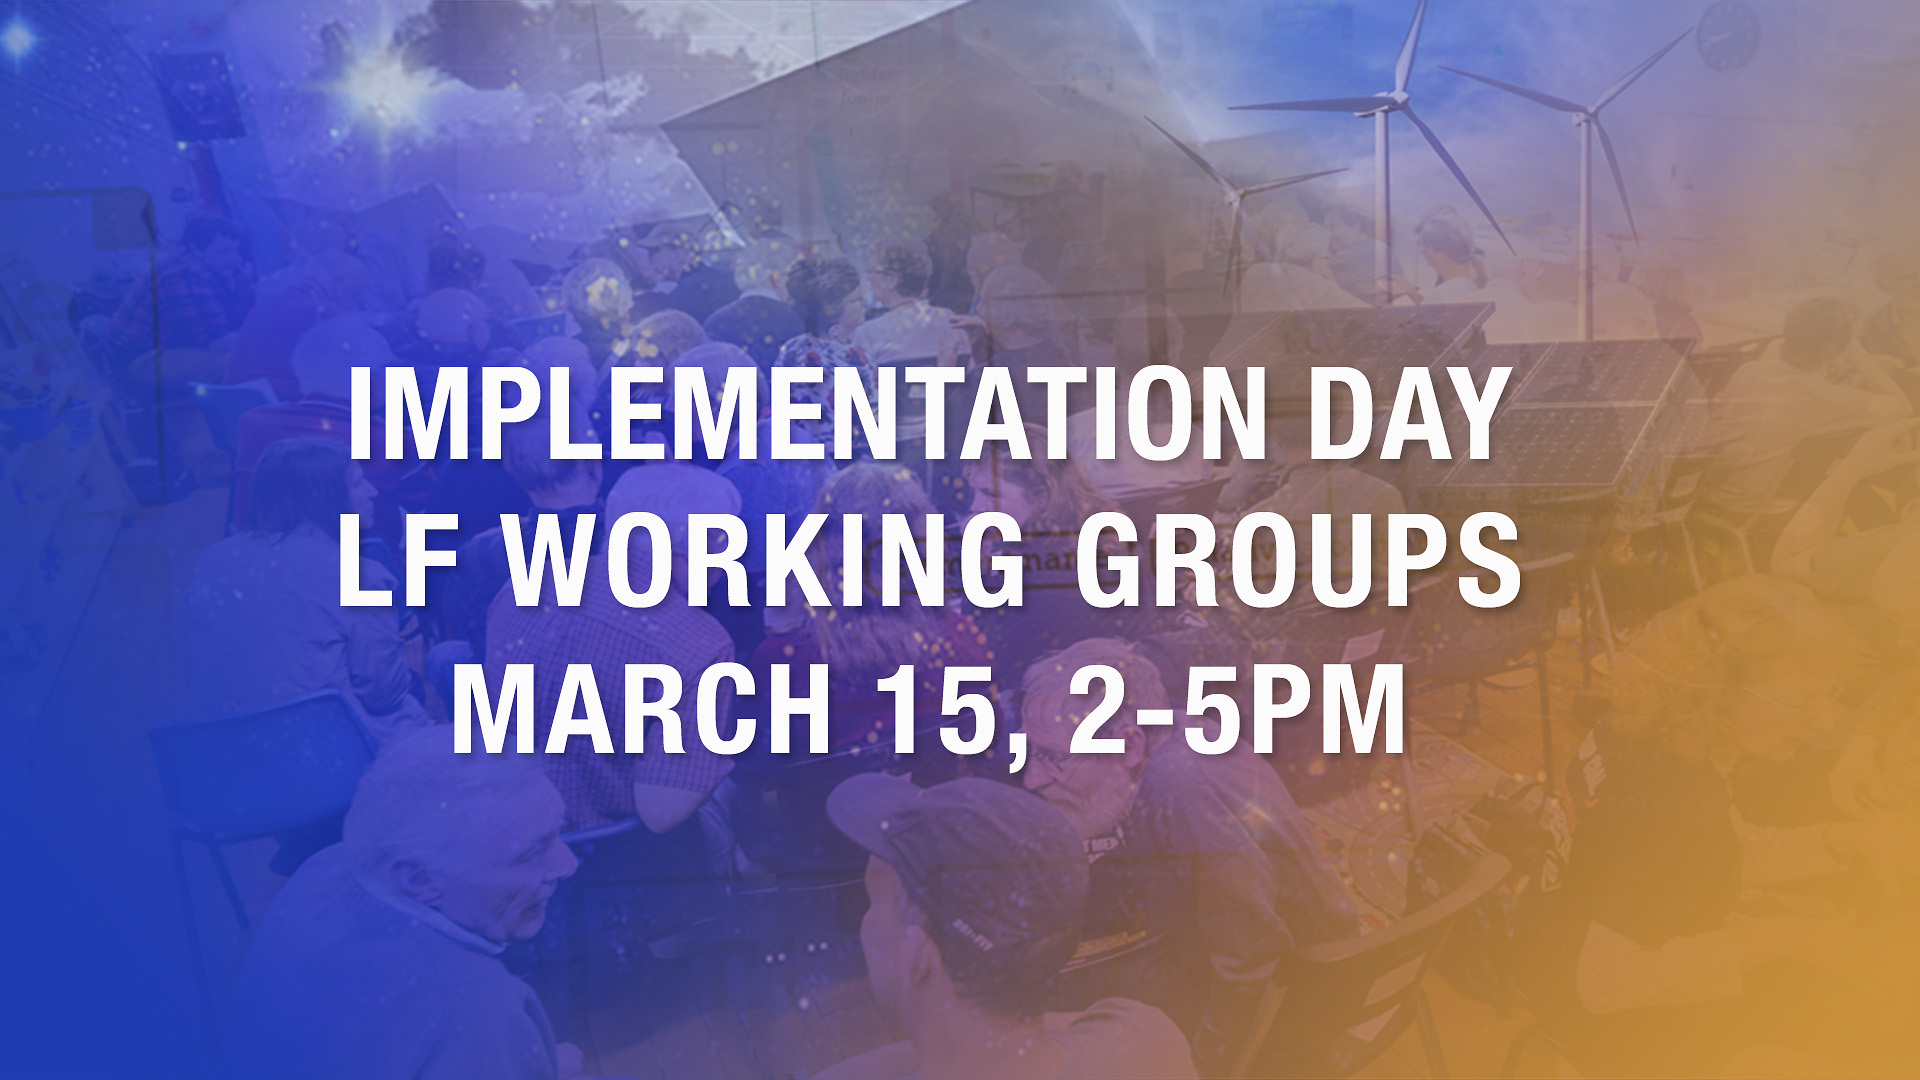 Implementation Day: get involved with Lighter Footprints Action Groups